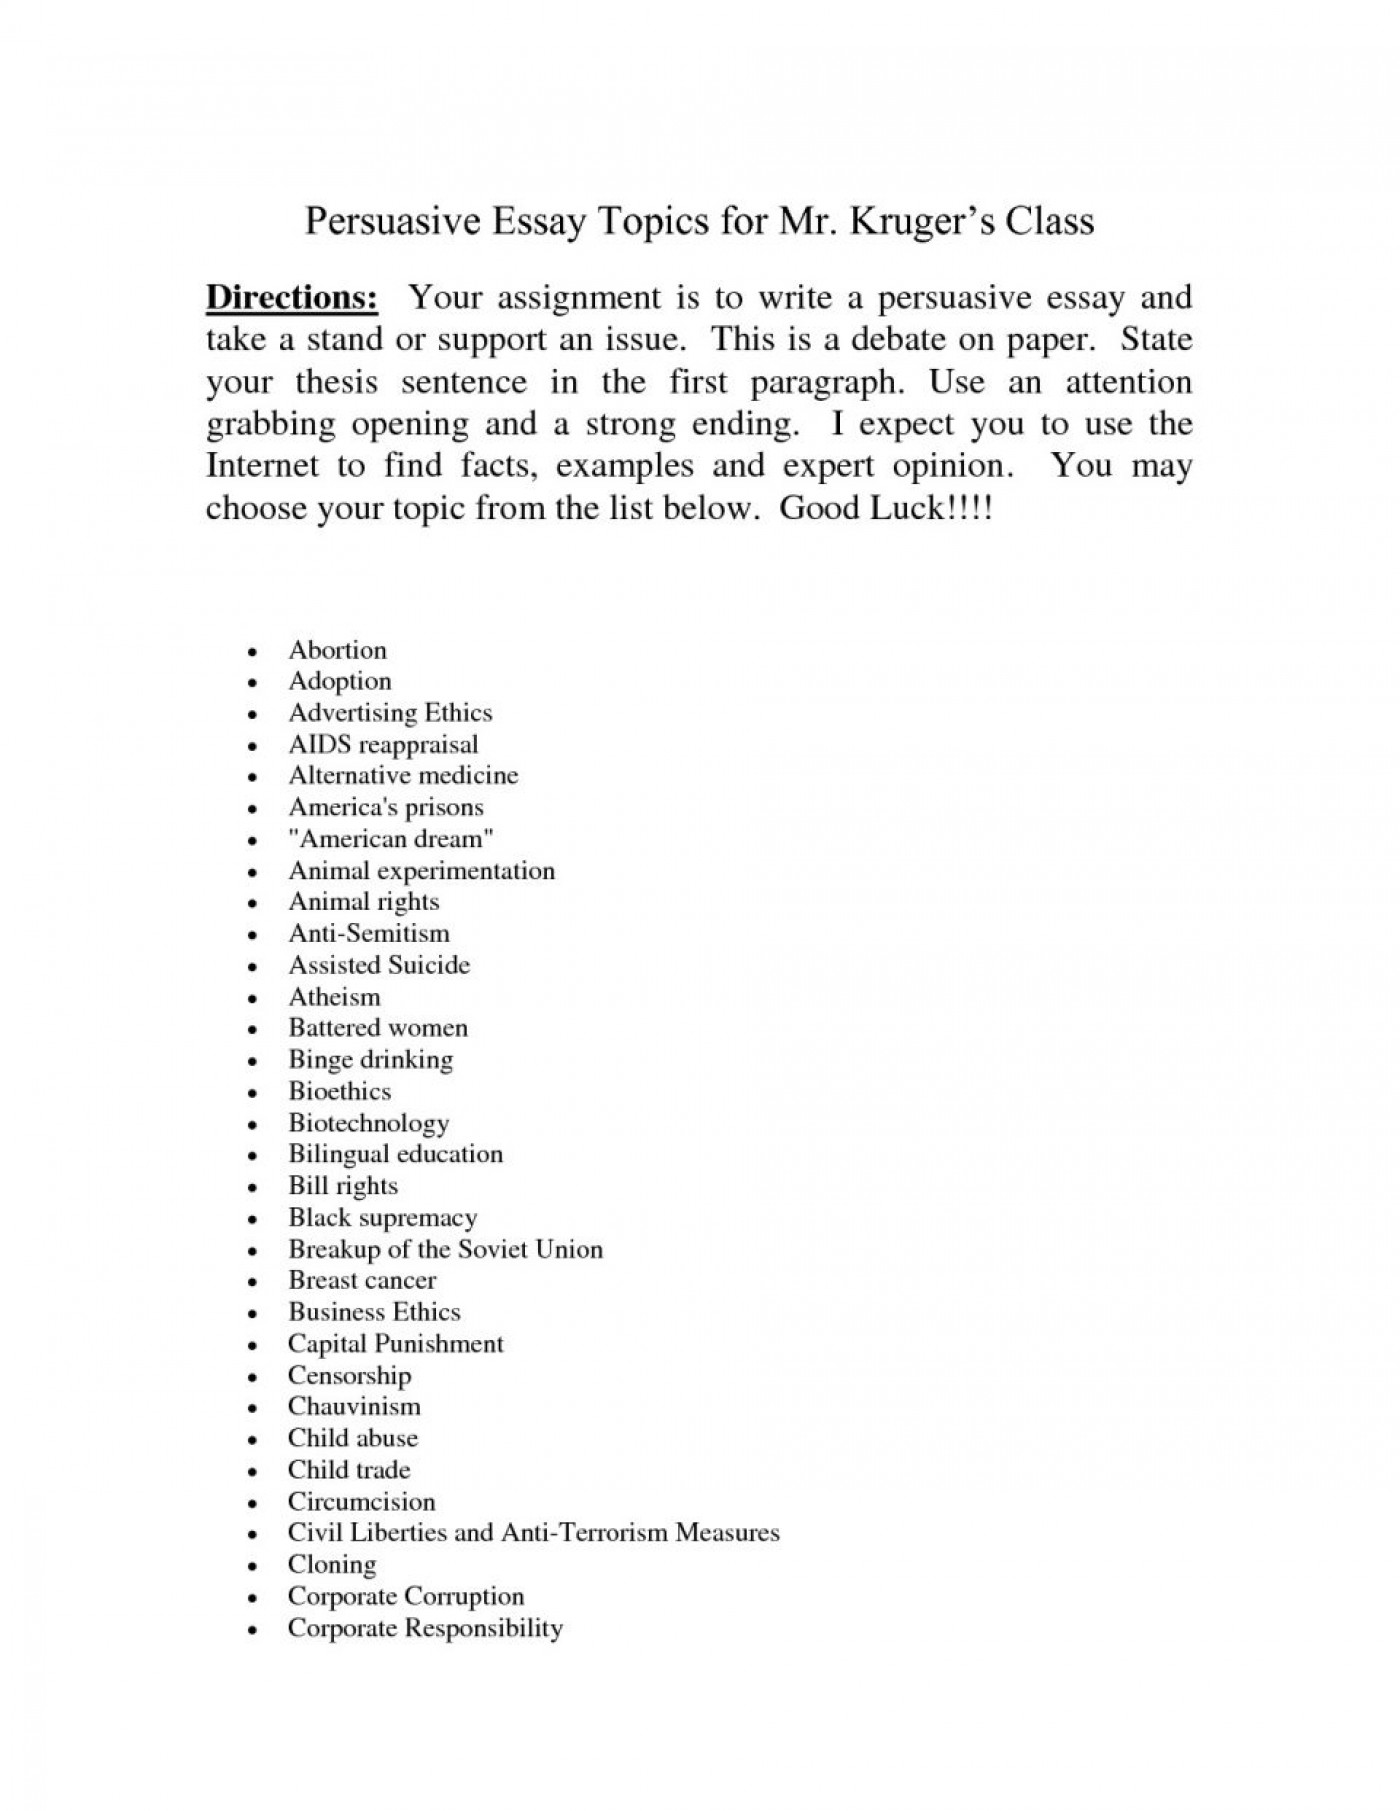 011 Research Paper Good Topic For Essay Barca Fontanacountryinn Within Persuasive Narrative Topics To Write Abo Easy About Personal Descriptive Informative Singular Best Ideas History High School Students In The Philippines 1400